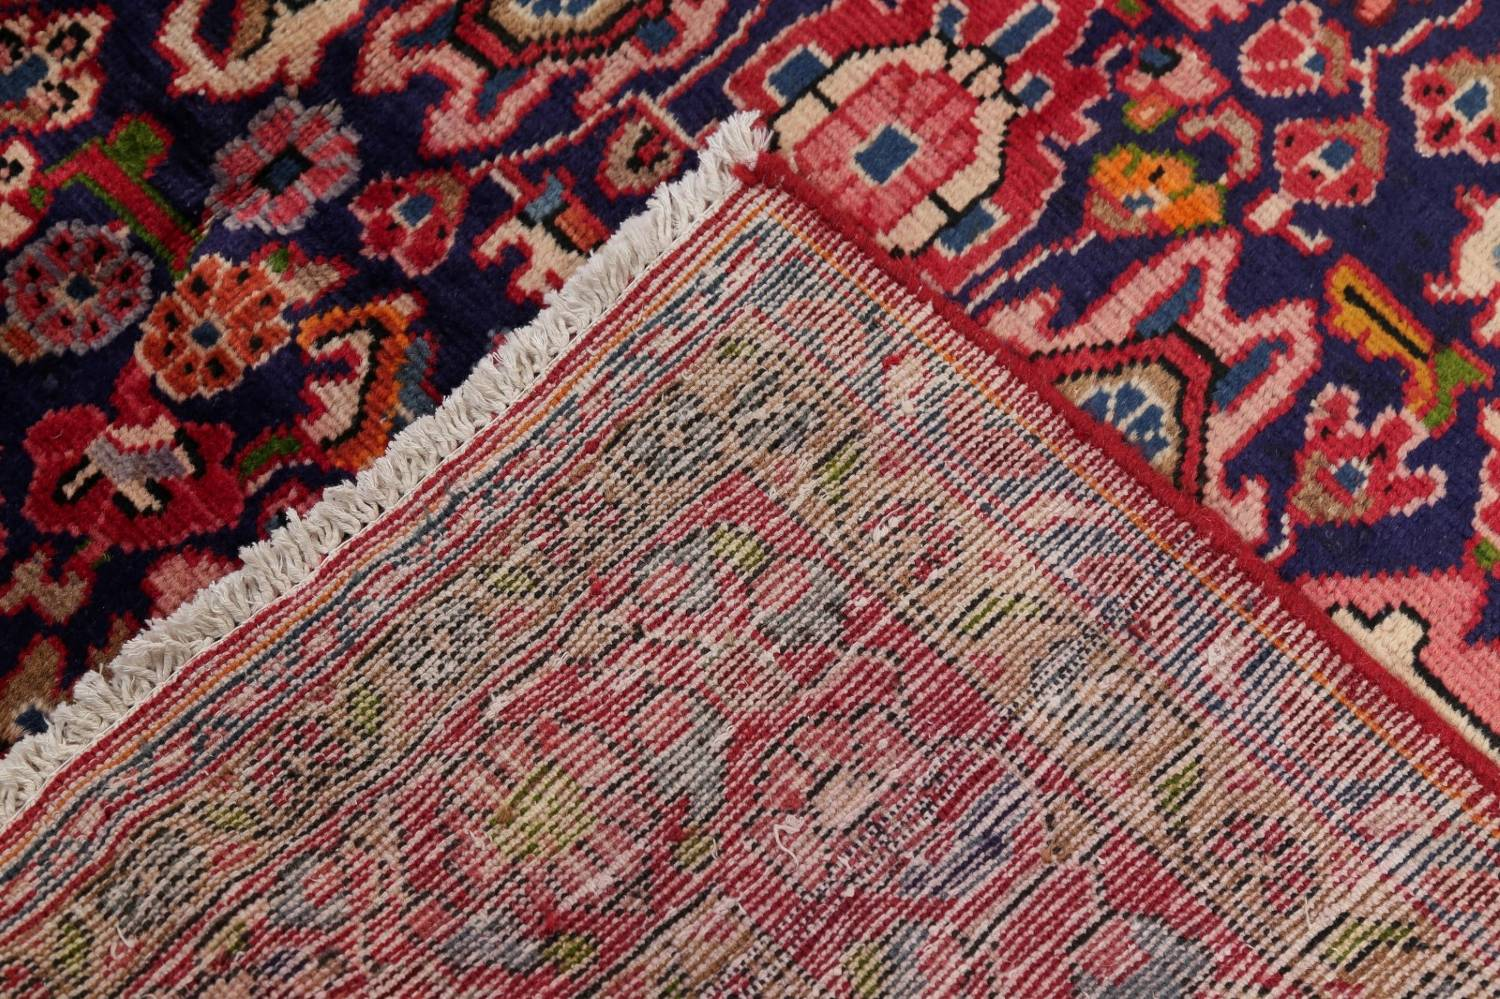 Geometric Sultanabad Persian Hand-Knotted 4x11 Wool Runner Rug image 20